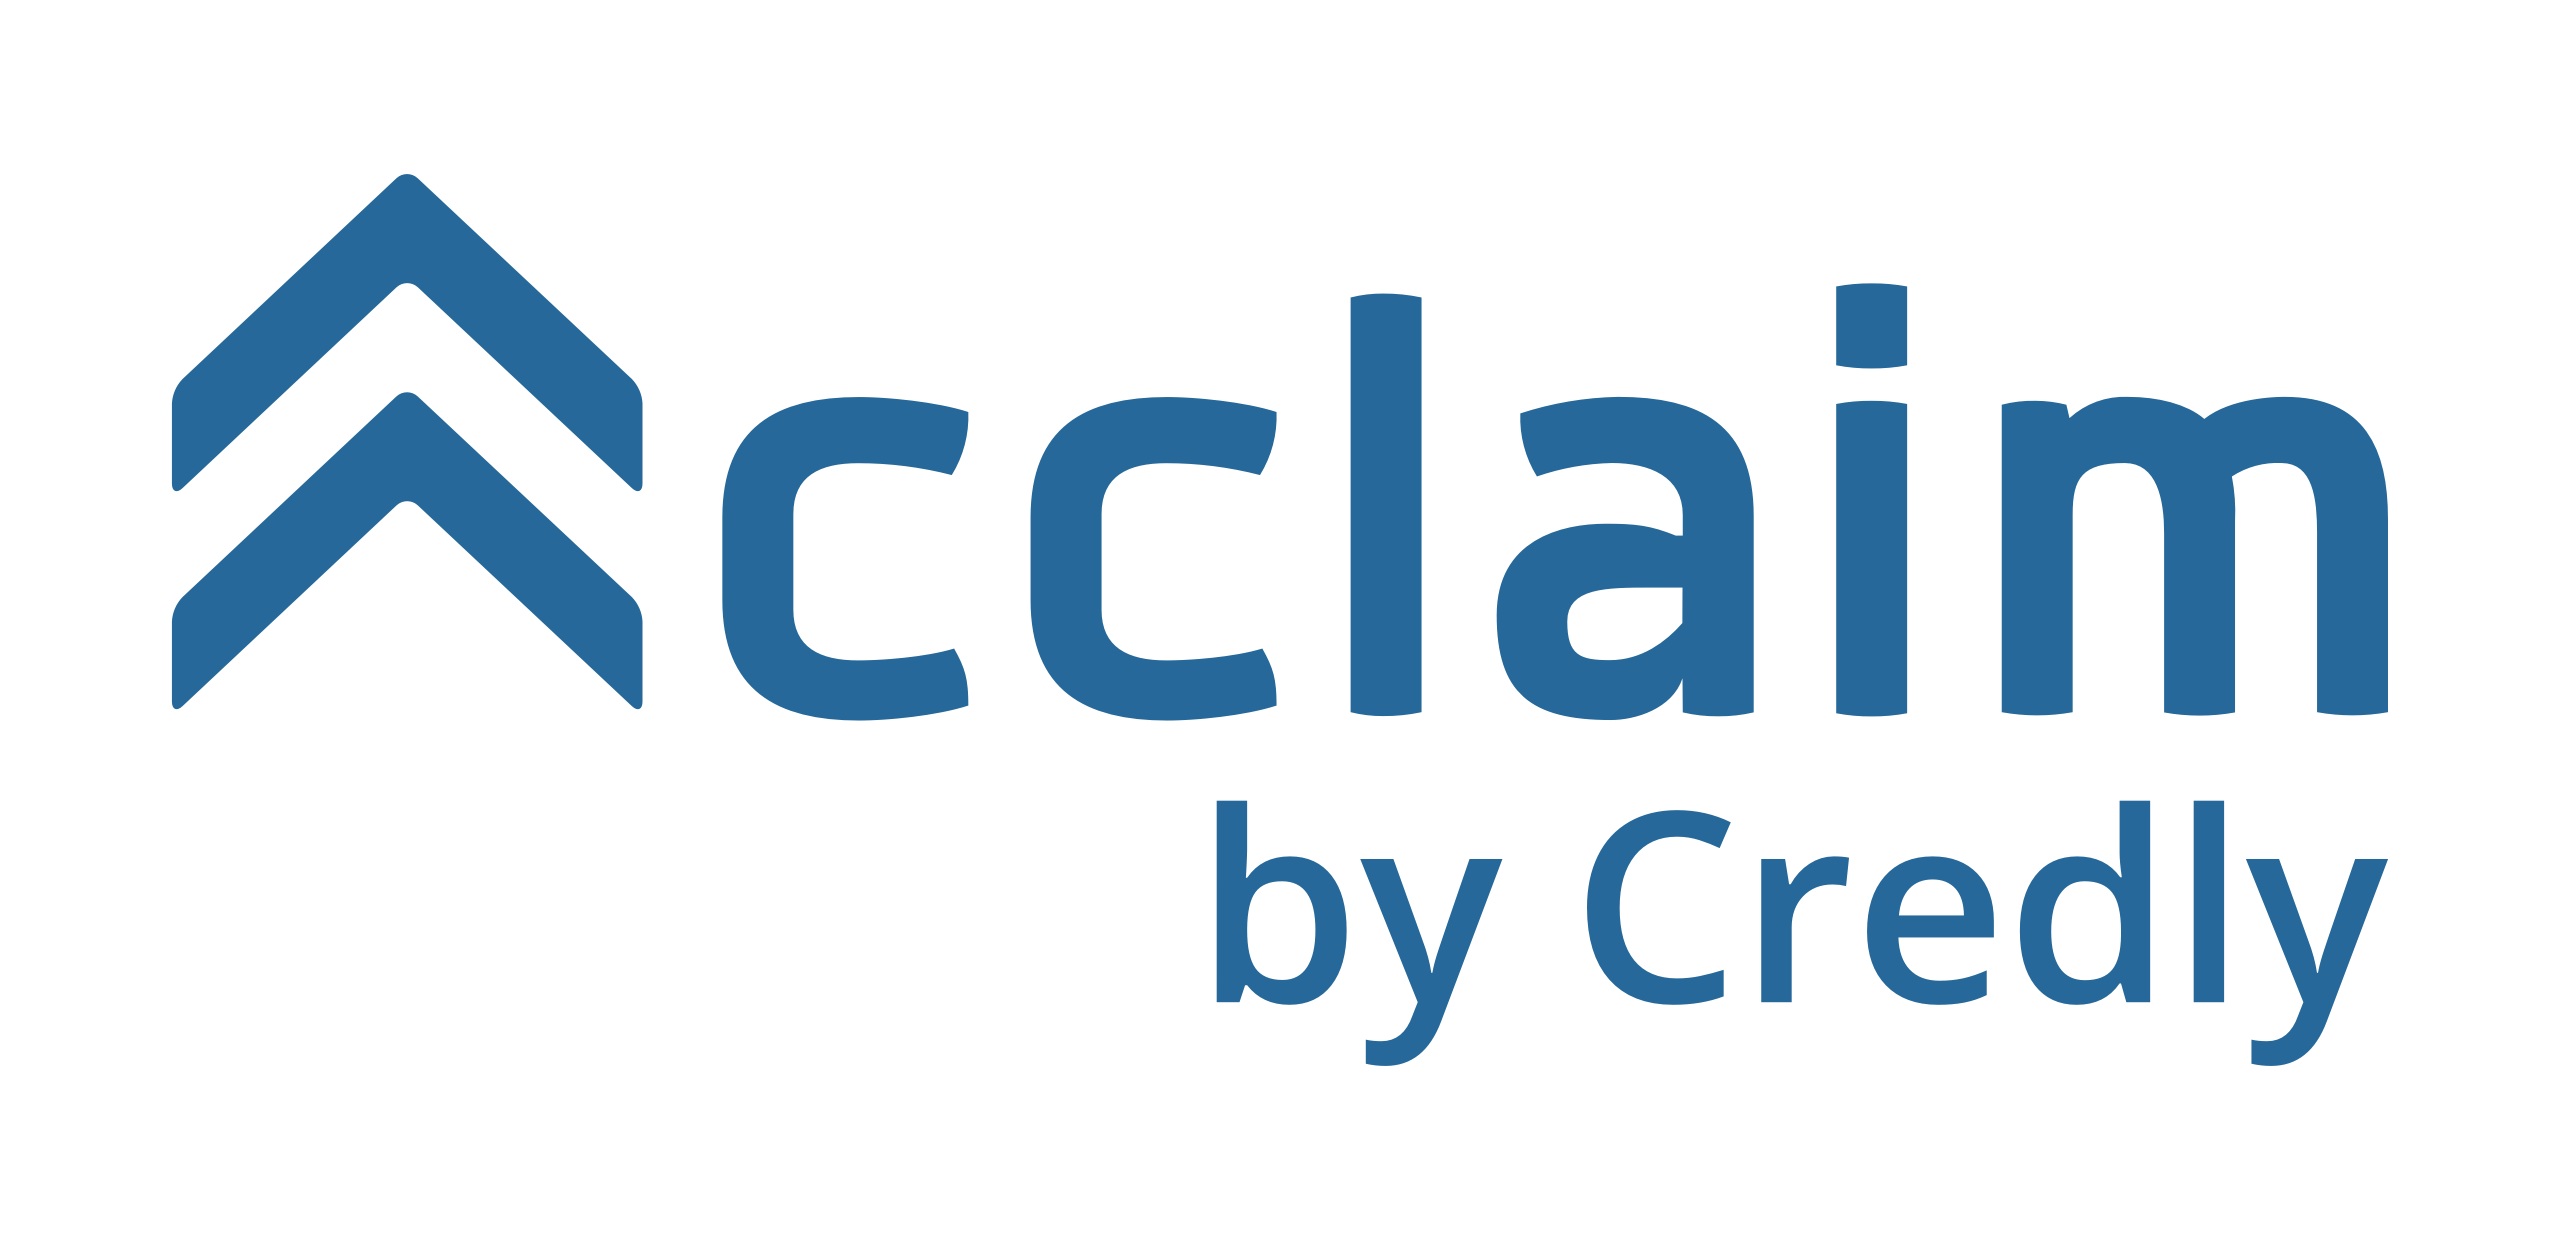 Acclaim by Credly logo